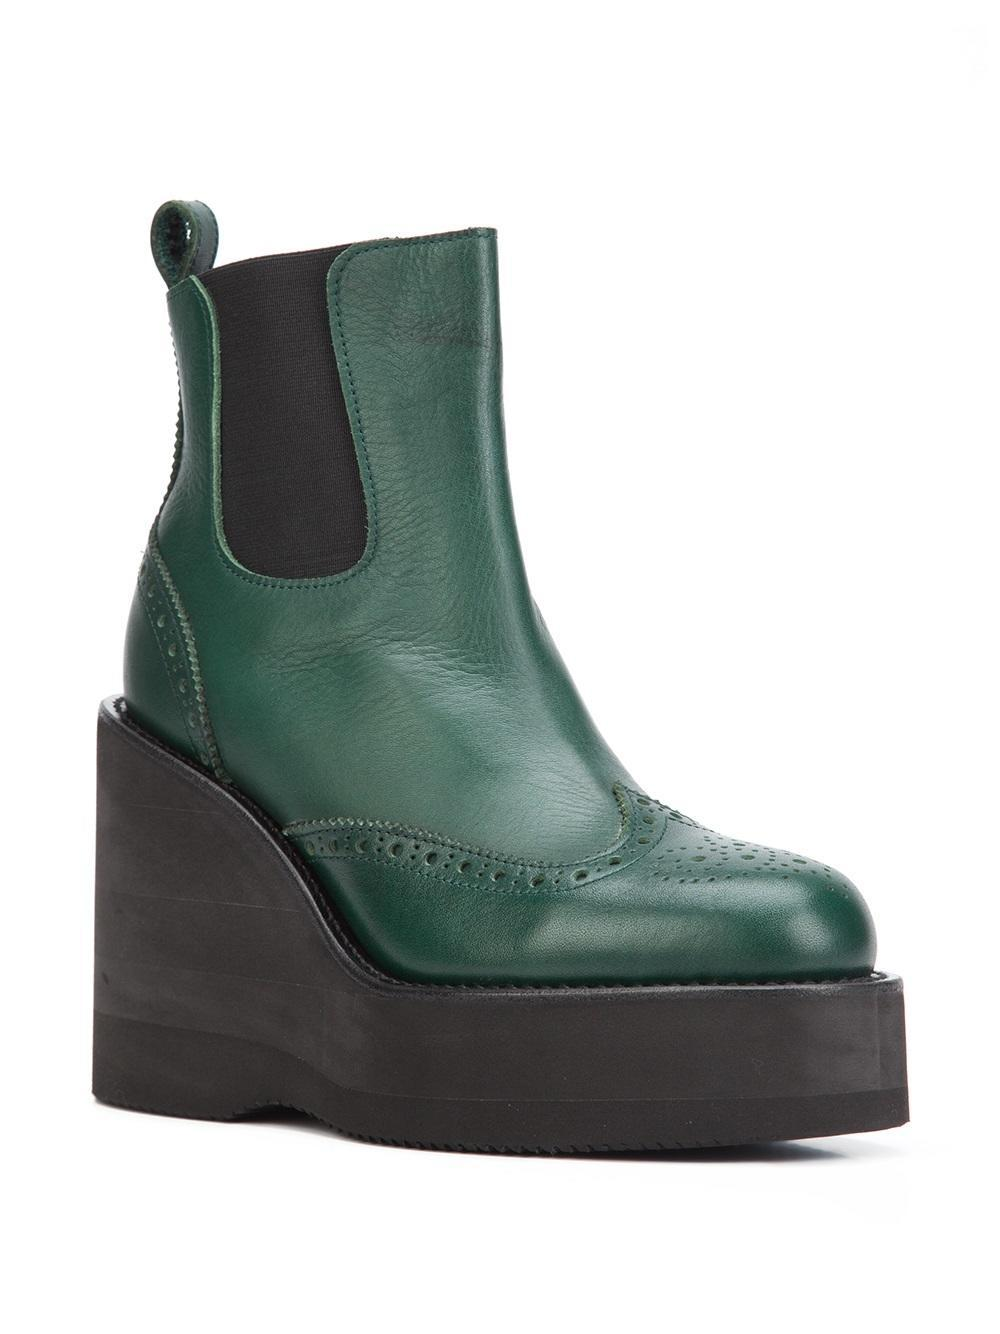 Sacai Leather Platform Wedge Boots in Green